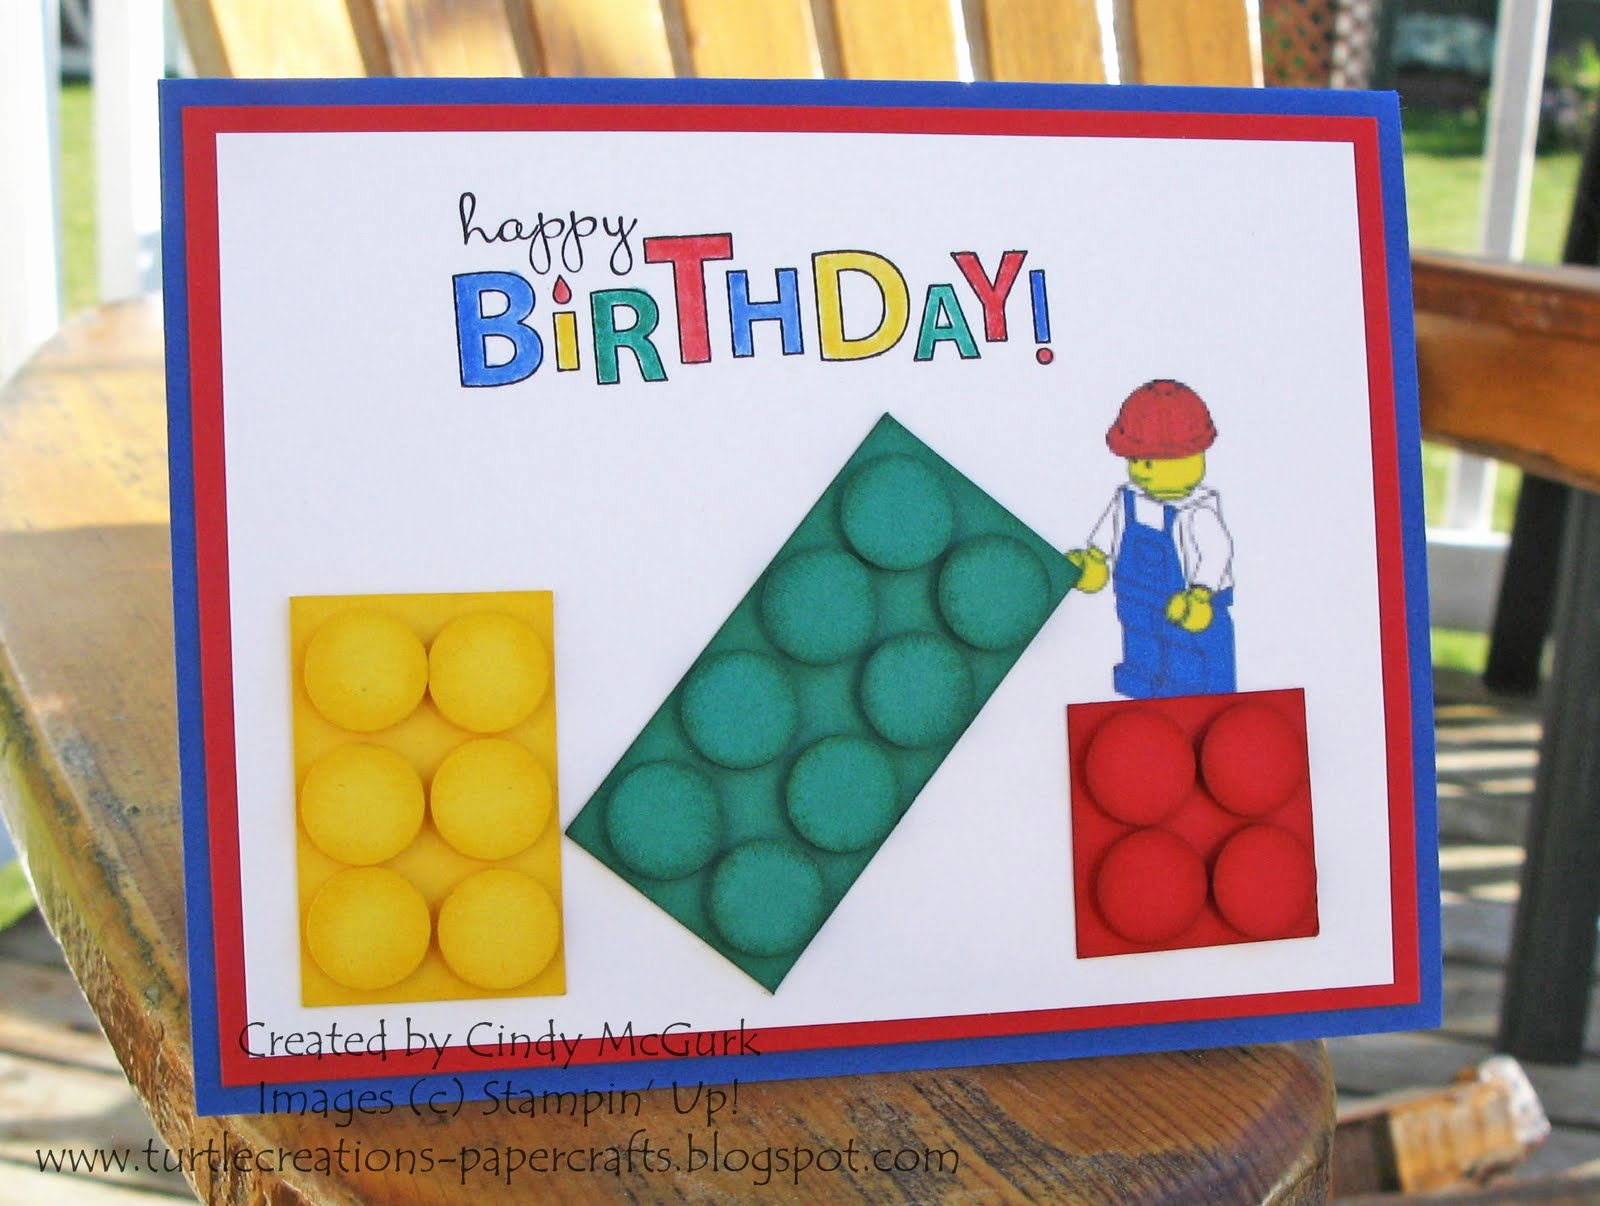 happy birthday lego card printable ; lego-birthday-cards-online-awesome-lego-clipart-birthday-card-pencil-and-in-color-lego-clipart-of-lego-birthday-cards-online